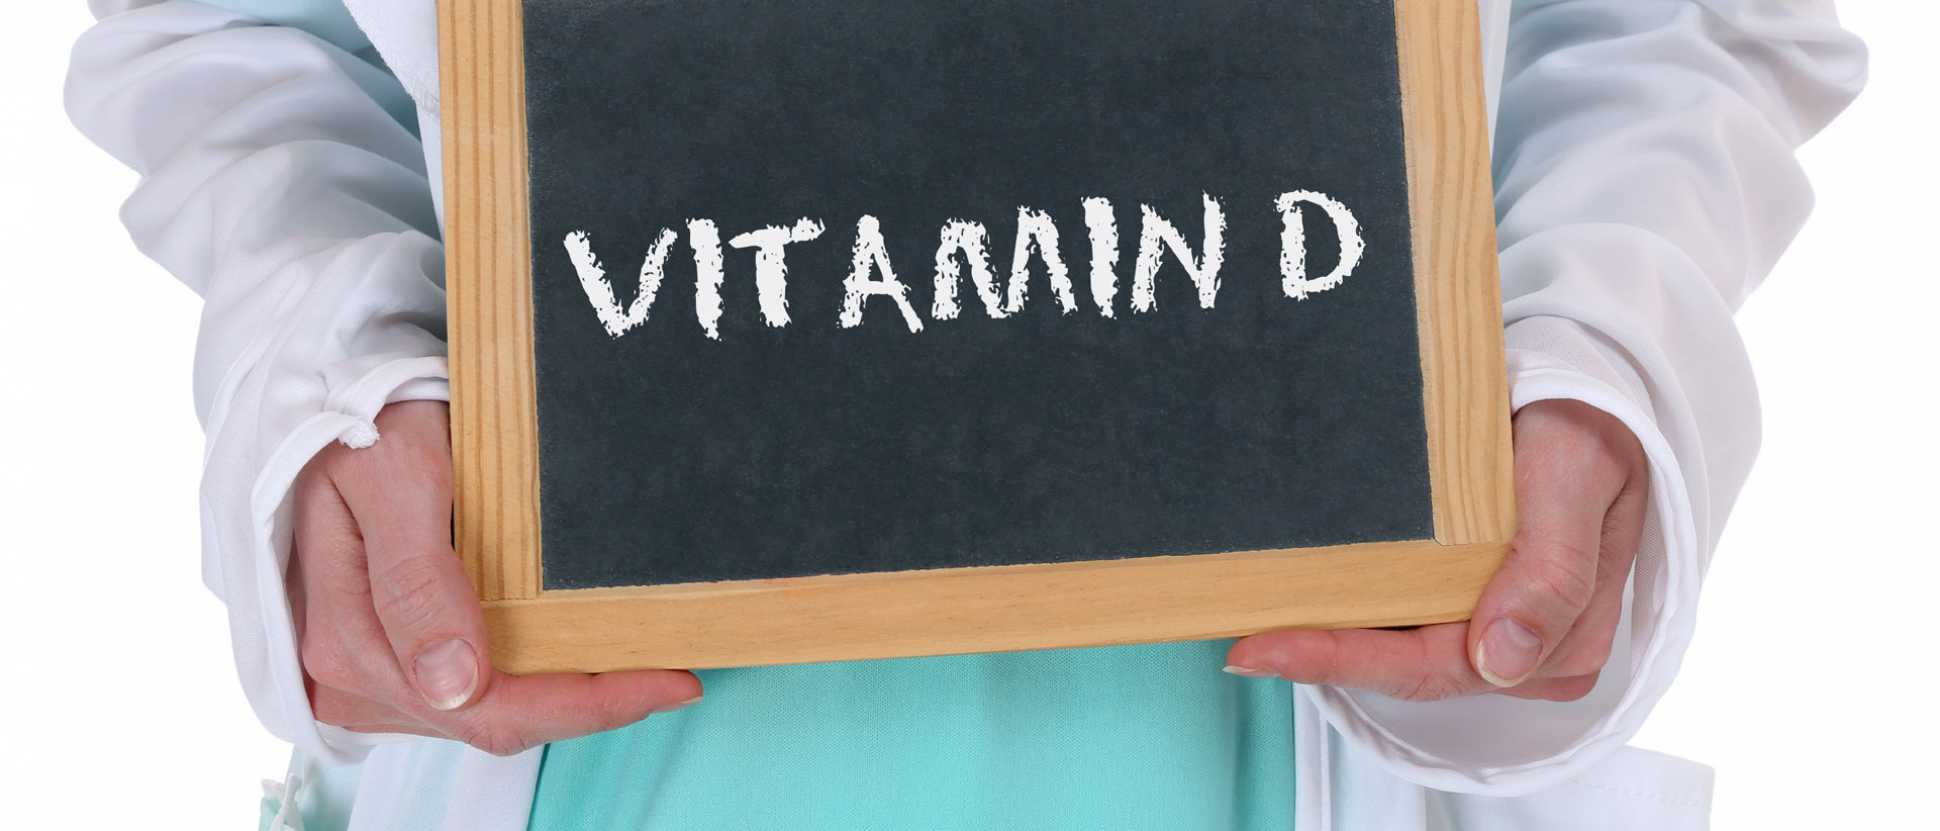 160811---Vitamin-D-levels-predict-risk-of-brain-decline-in-Chinese-elderly_0jpg